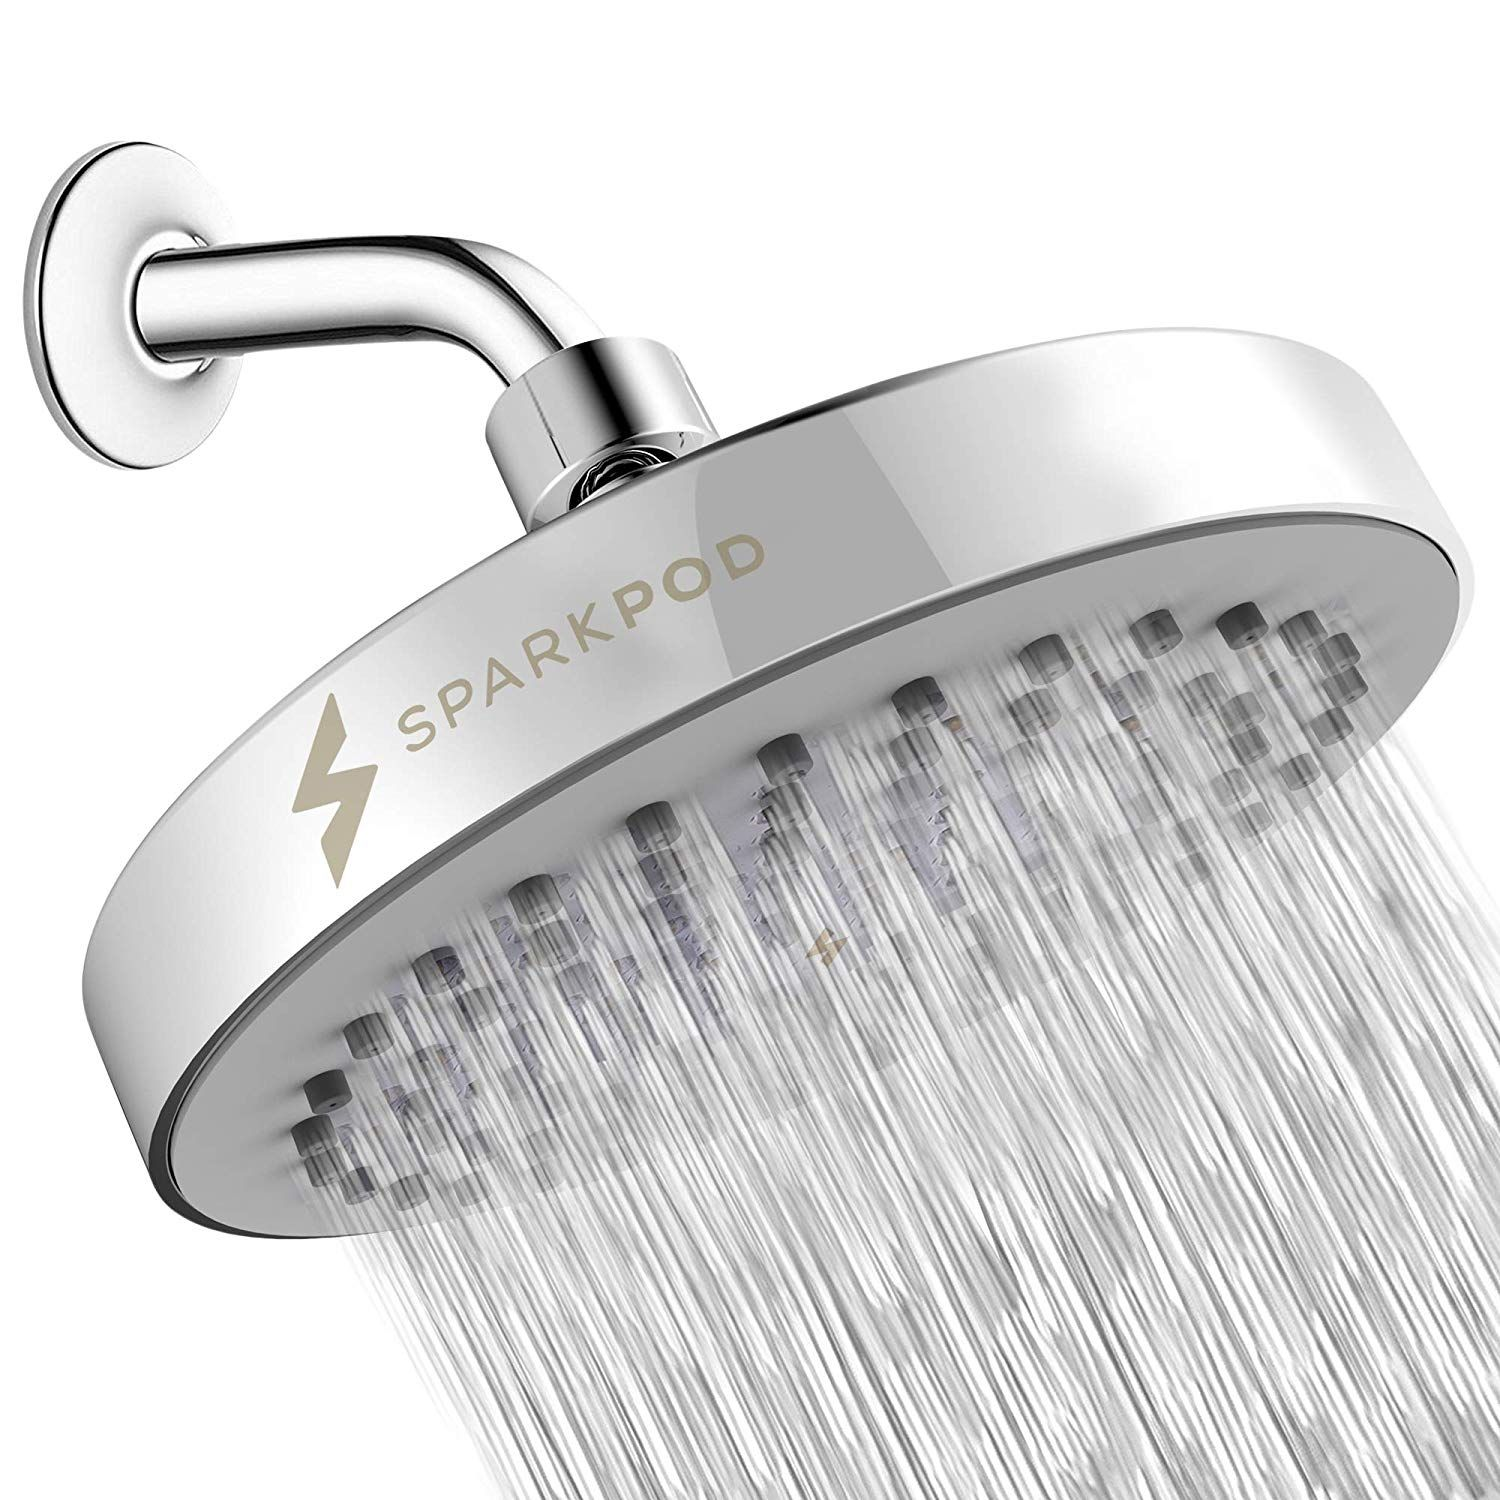 High Pressure Rainfall Shower Head Our Luxury Bathroom Rainhead